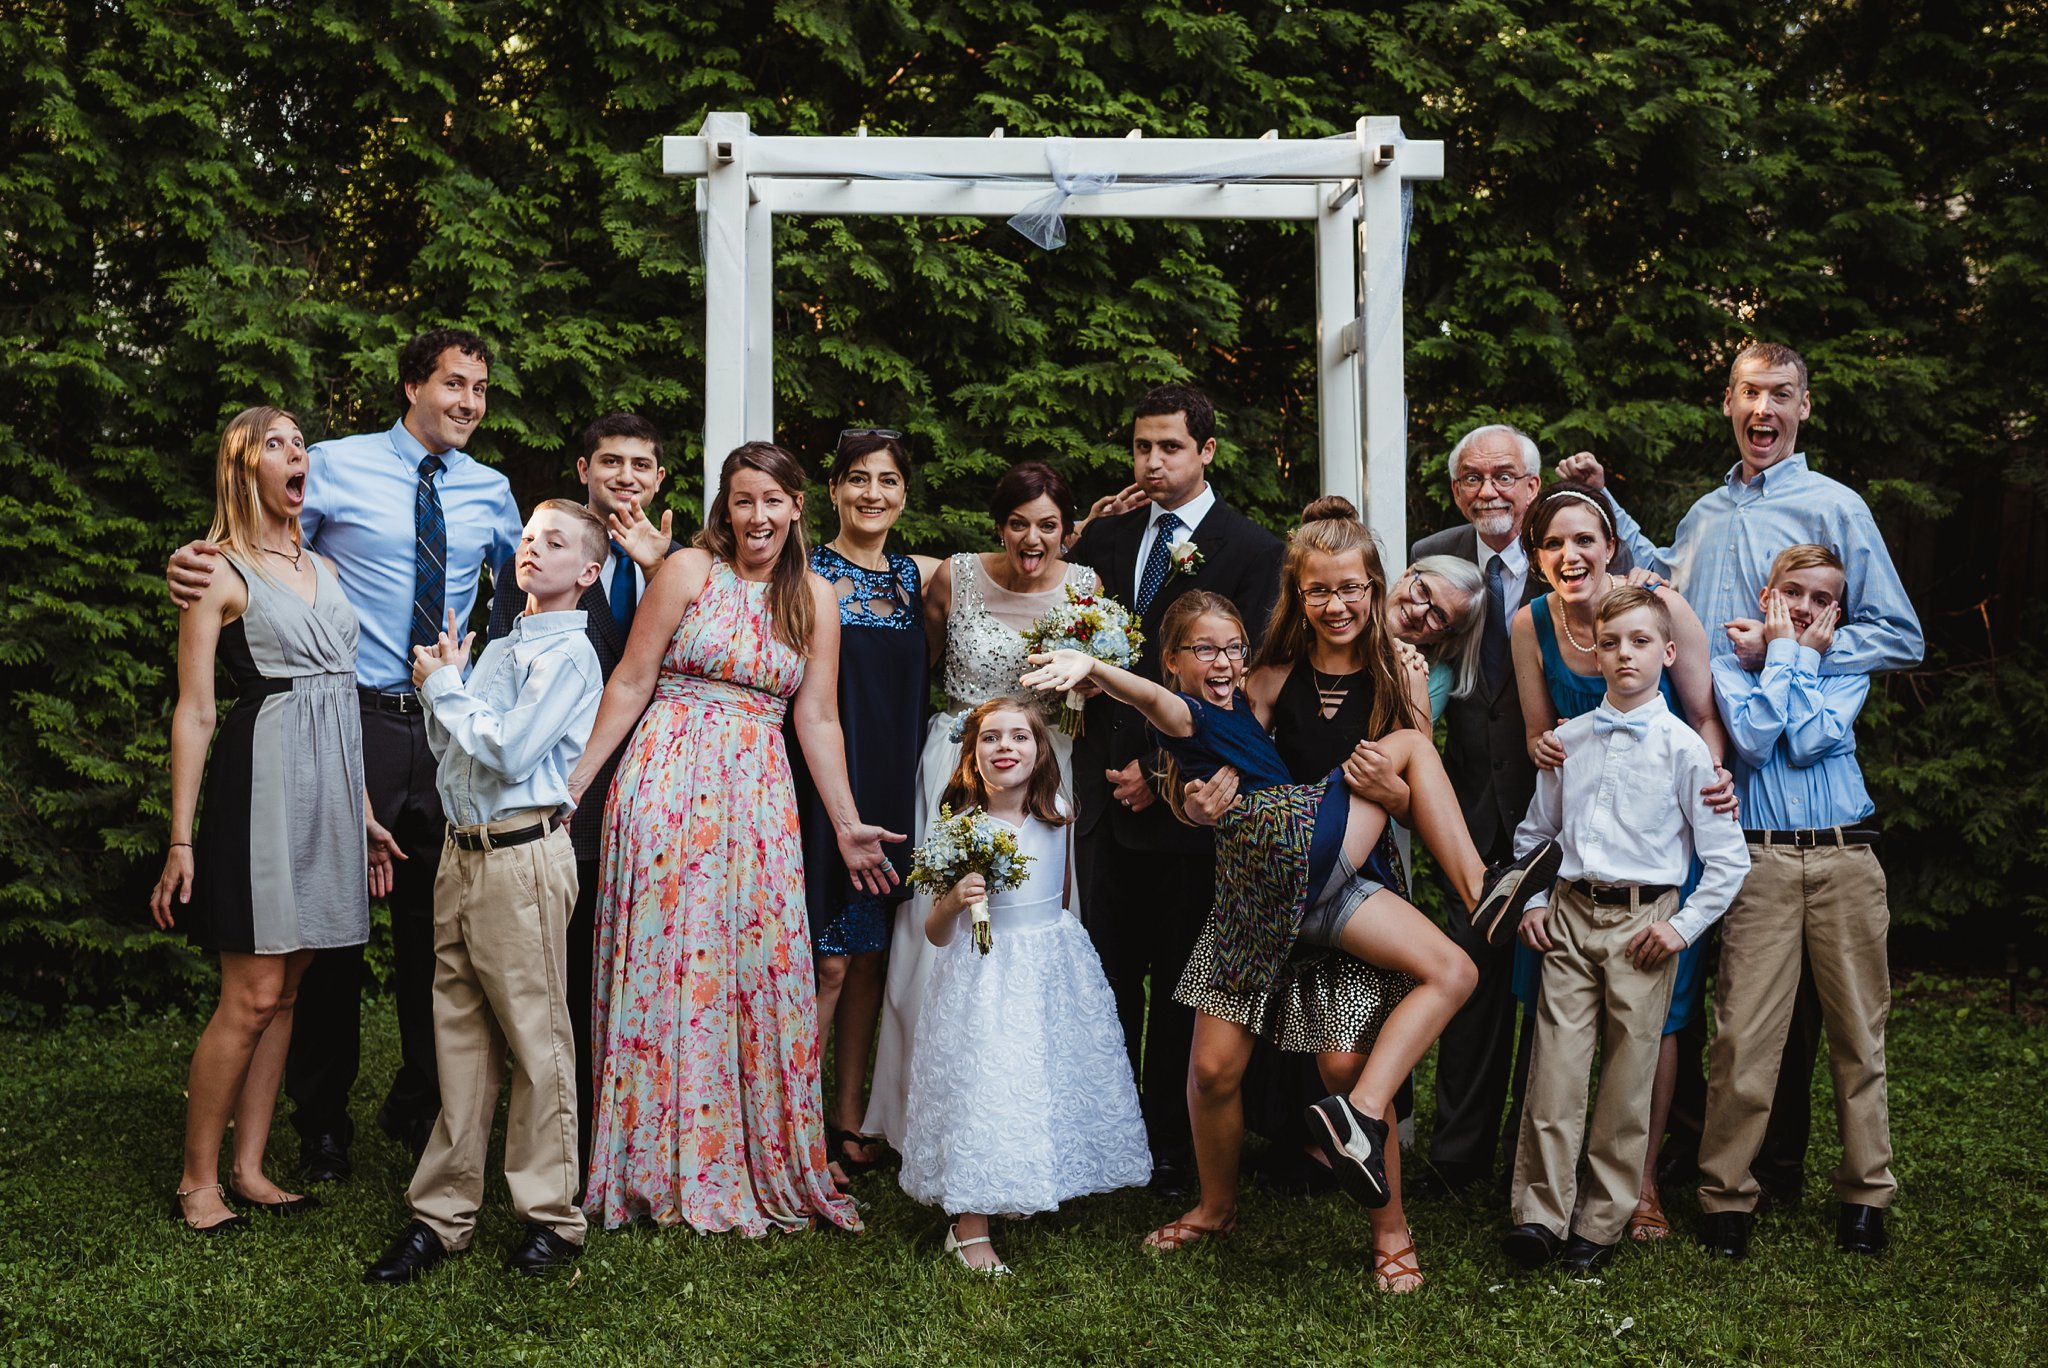 The bride and groom took pictures with all of their guests after their intimate wedding ceremony that took place in their backyard in downtown Raleigh, North Carolina, photo by Rose Trail Images.